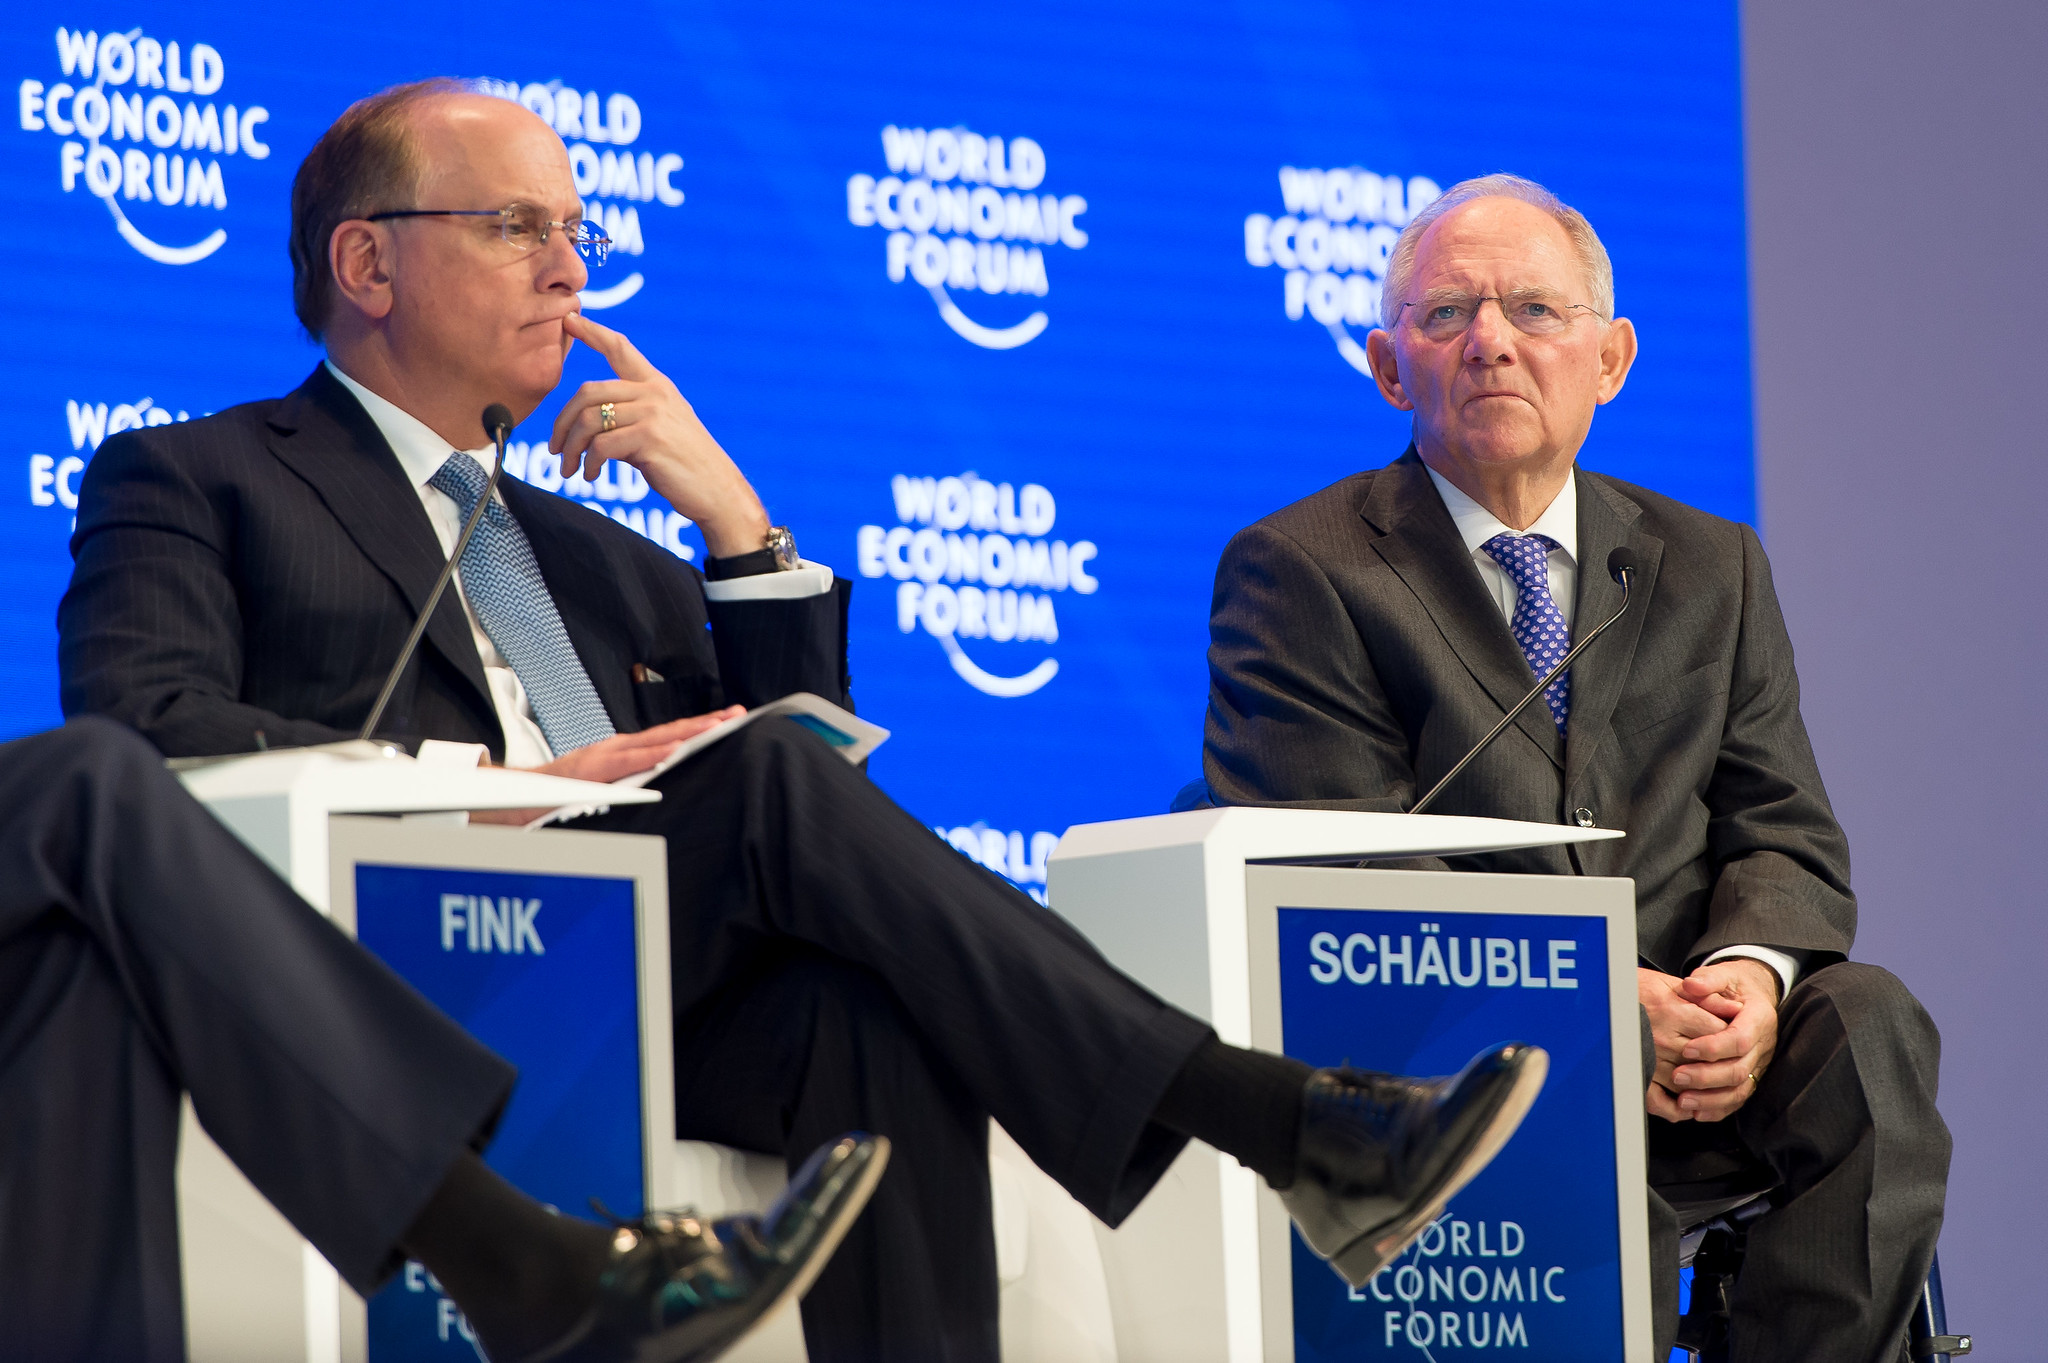 <p>Larry Fink at Davos. Flickr/World Economic Forum.</p>